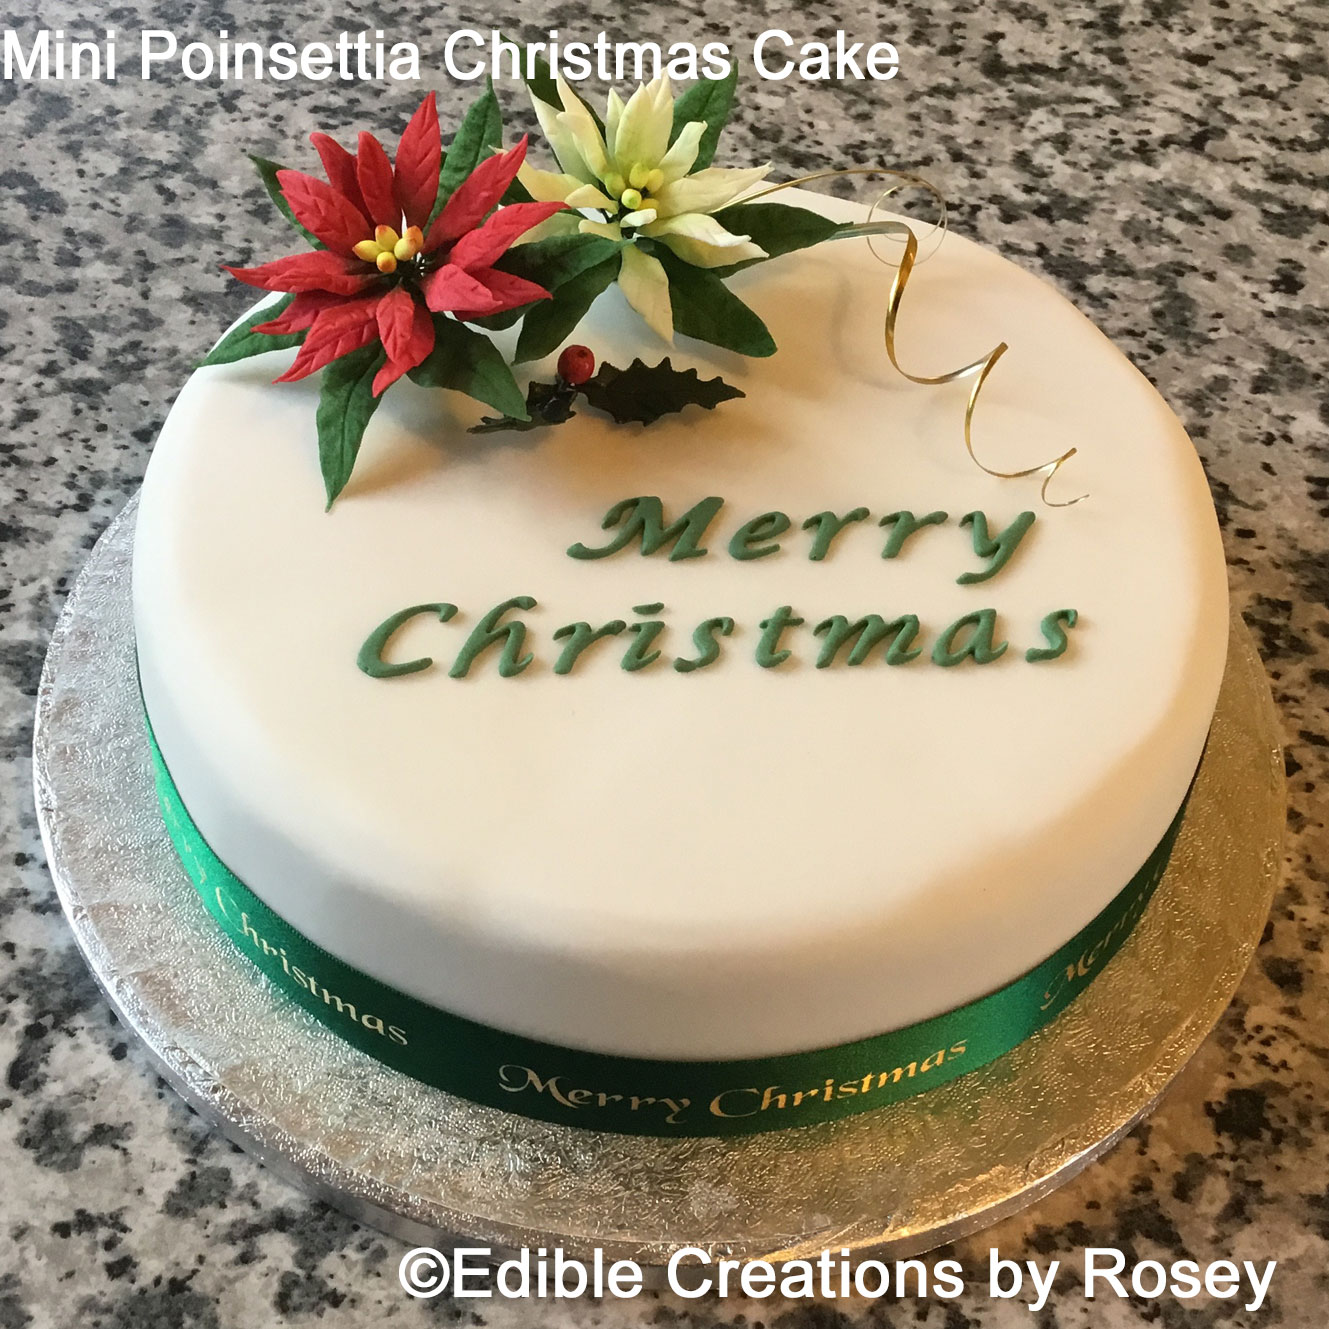 Mini Poinsettia Christmas Cake